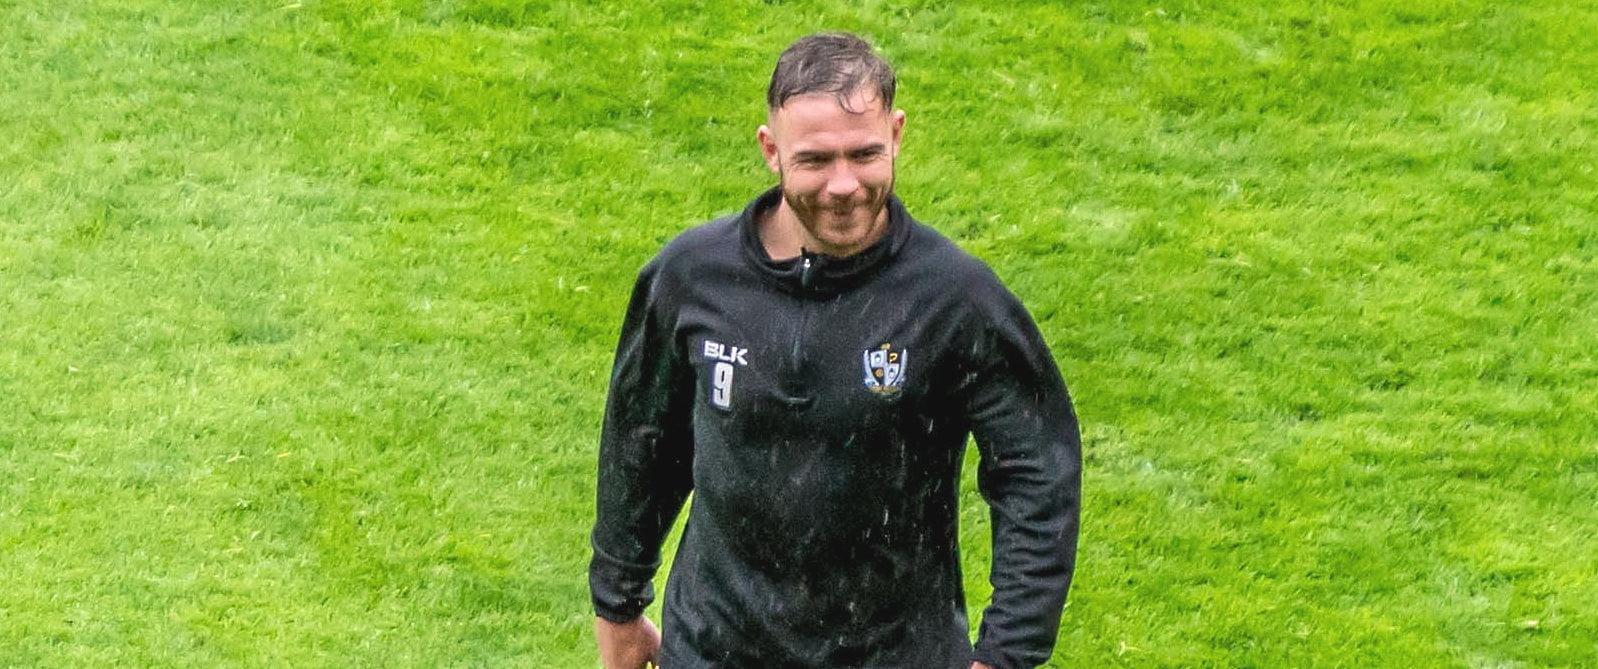 Port Vale FC striker Tom Pope